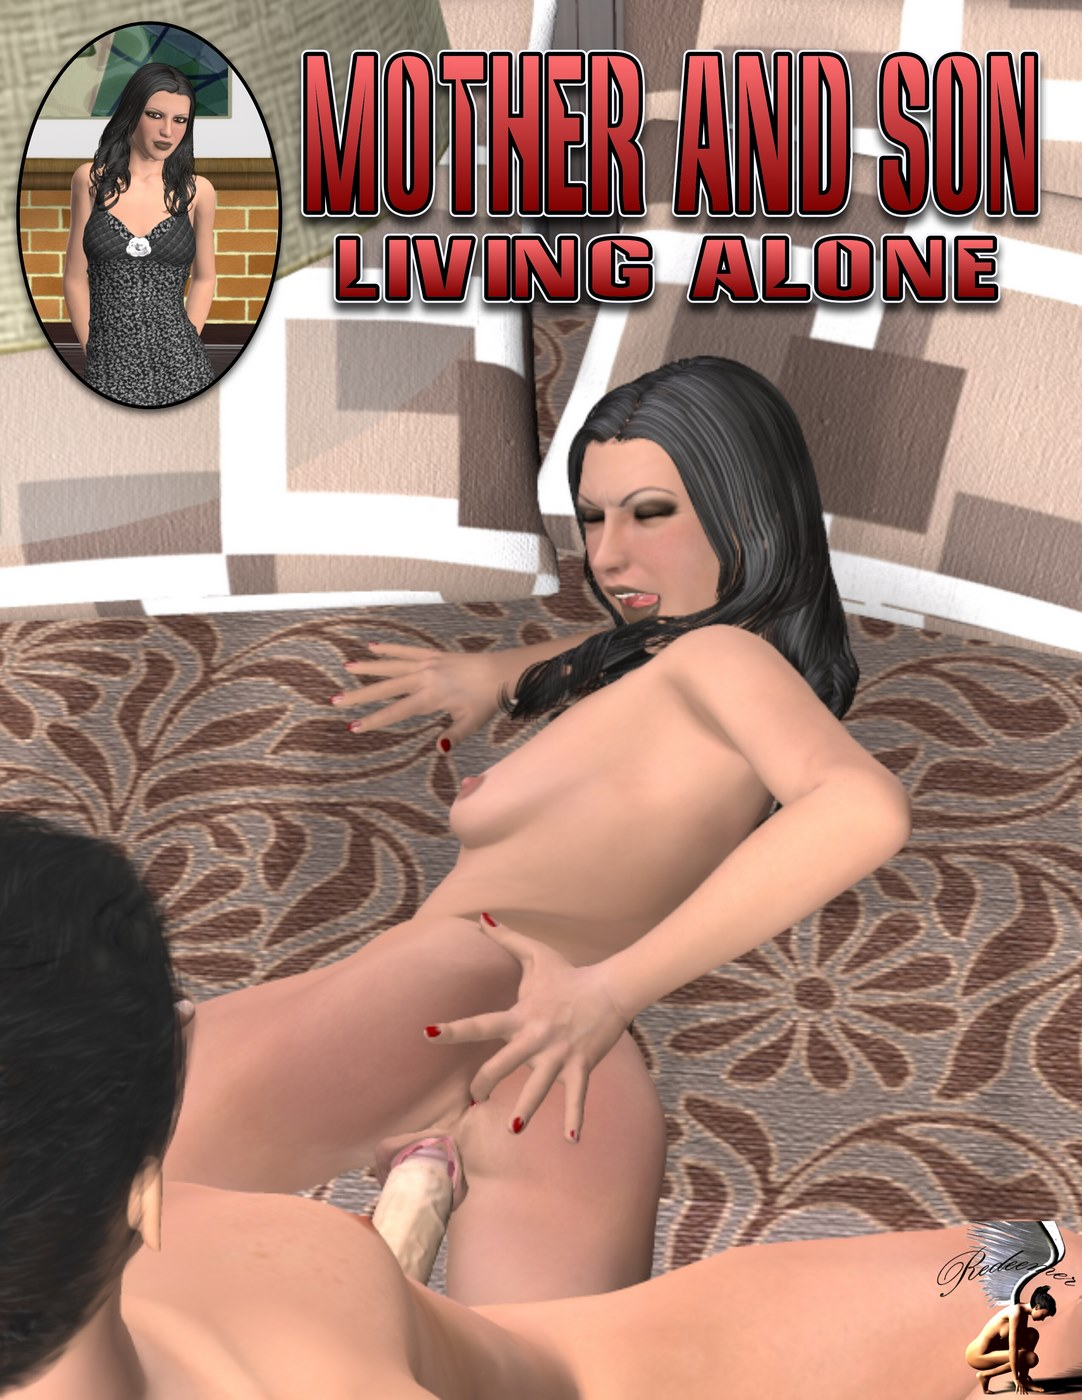 Mother and Son living alone- Redeemer porn comics 8 muses